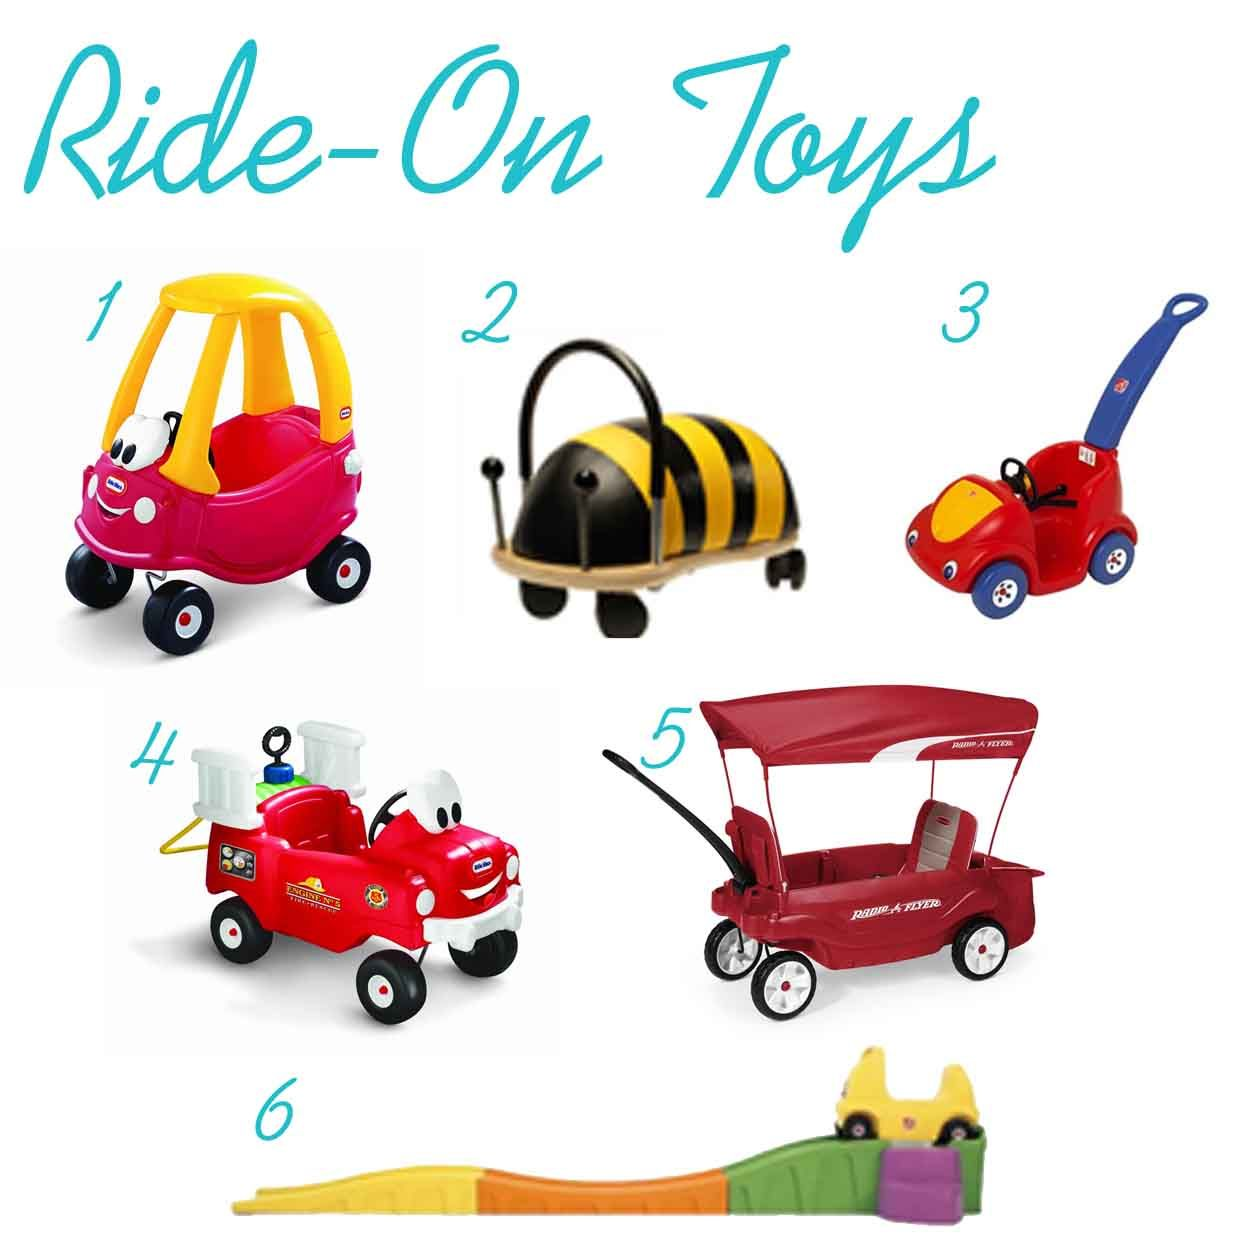 The Ultimate Gift List For A 1 Year Old Boy Best Kids Toys Toys For 1 Year Old Birthday Gifts For Boys